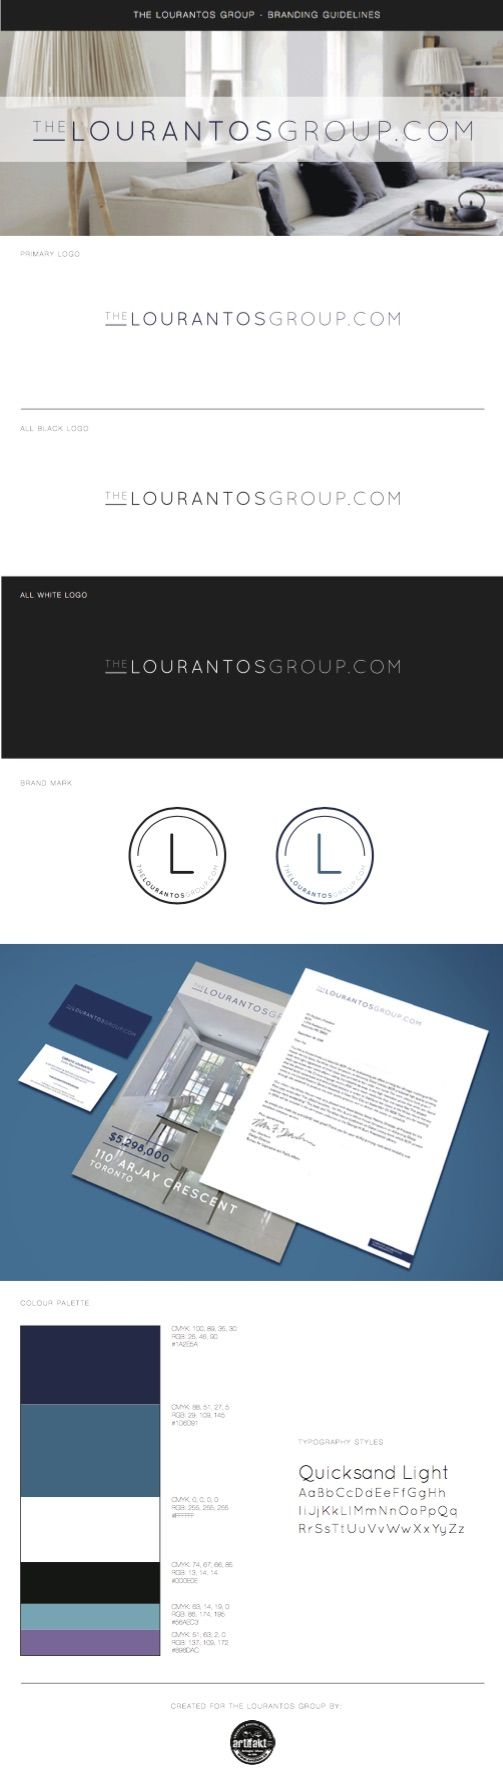 The completed branding guidelines we did for The Lourantos Group.